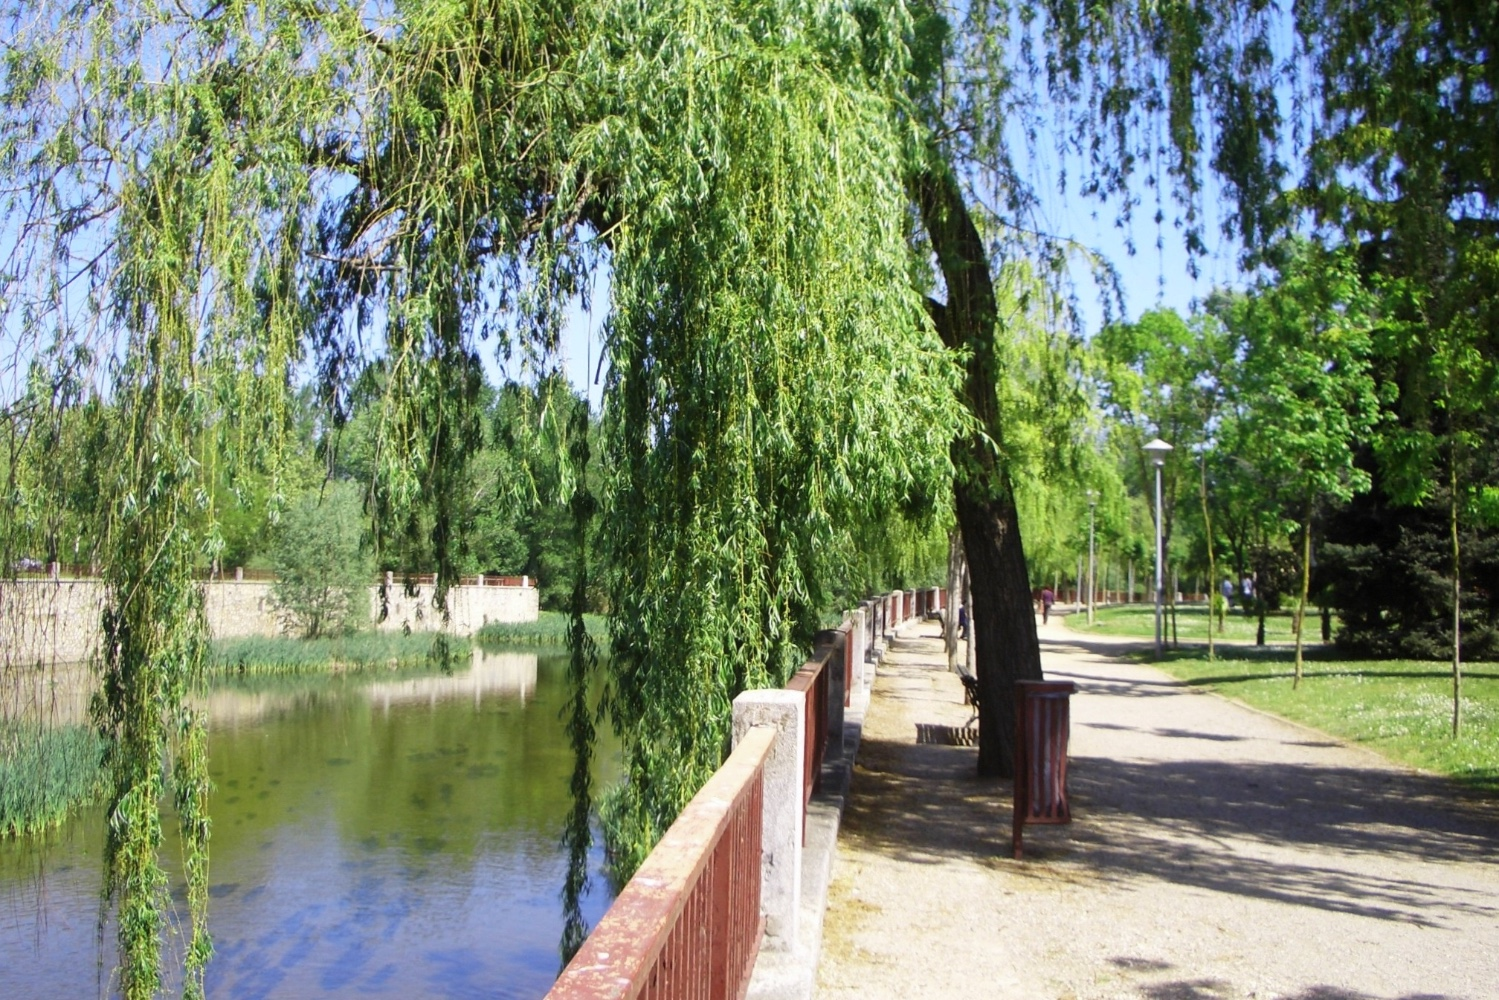 5.11 River bank near apts.jpg